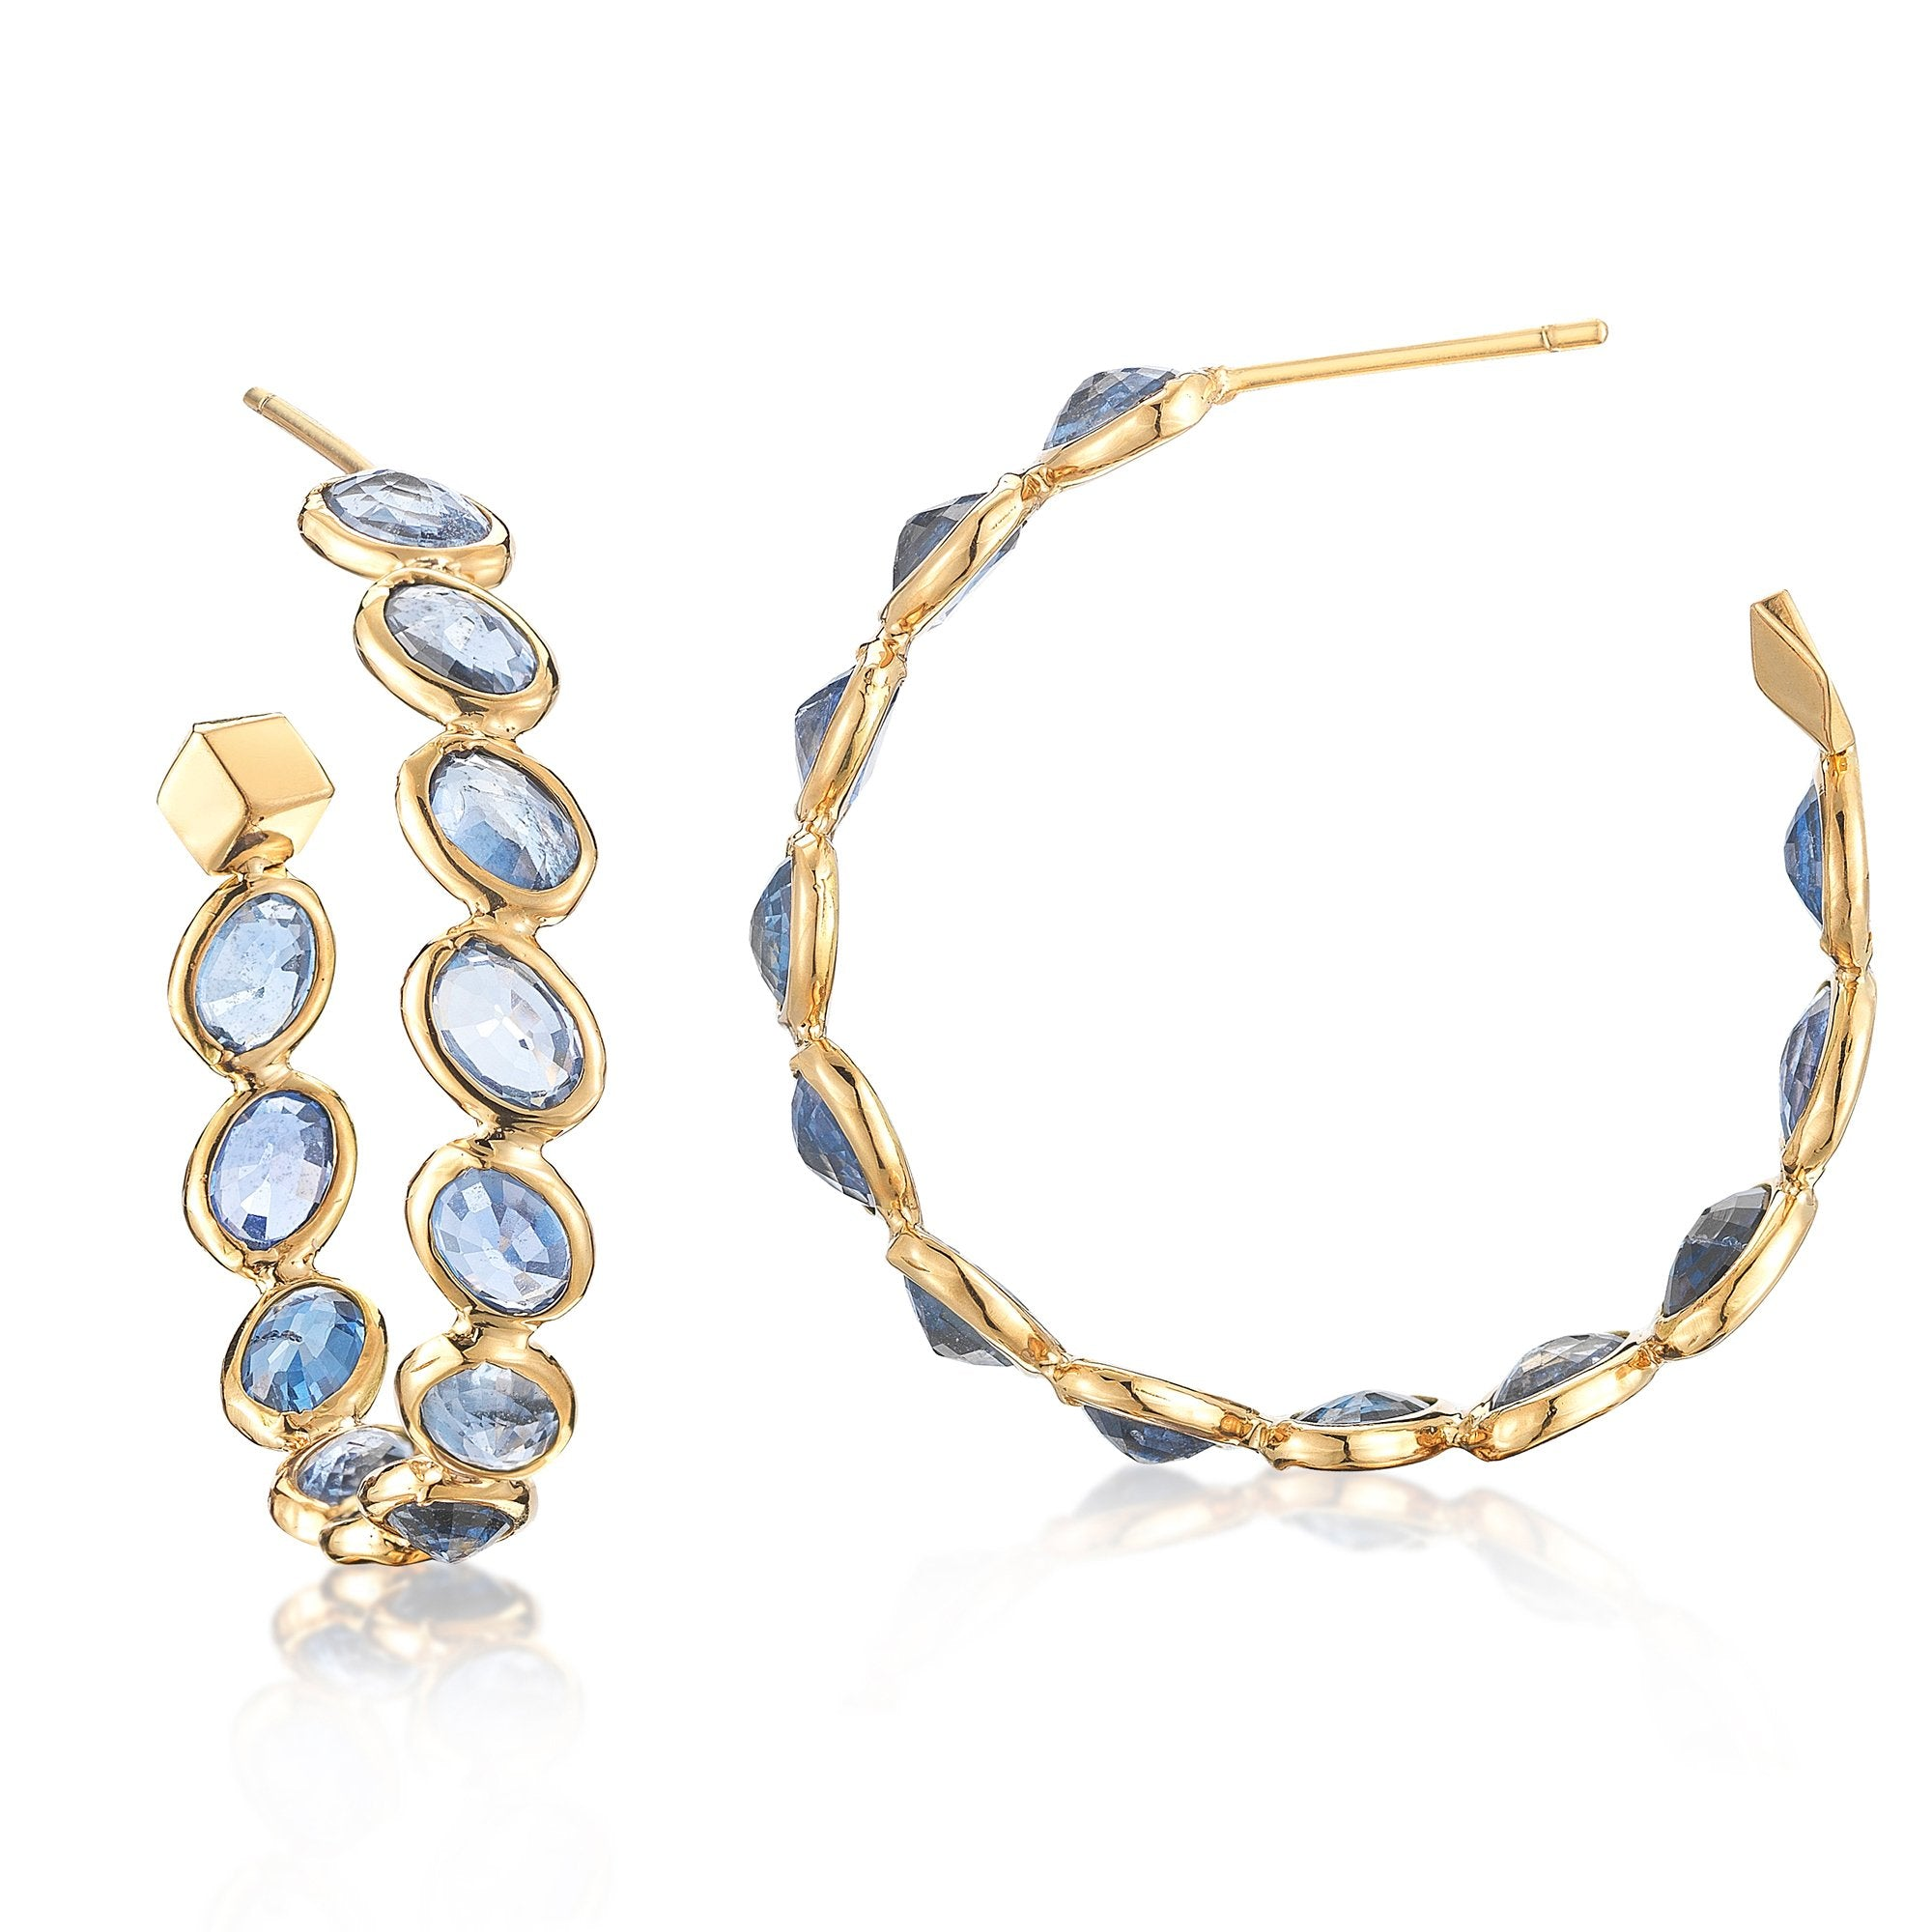 Blue Sapphire 'Ombre' Hoop Earrings, Medium - Paolo Costagli - 1